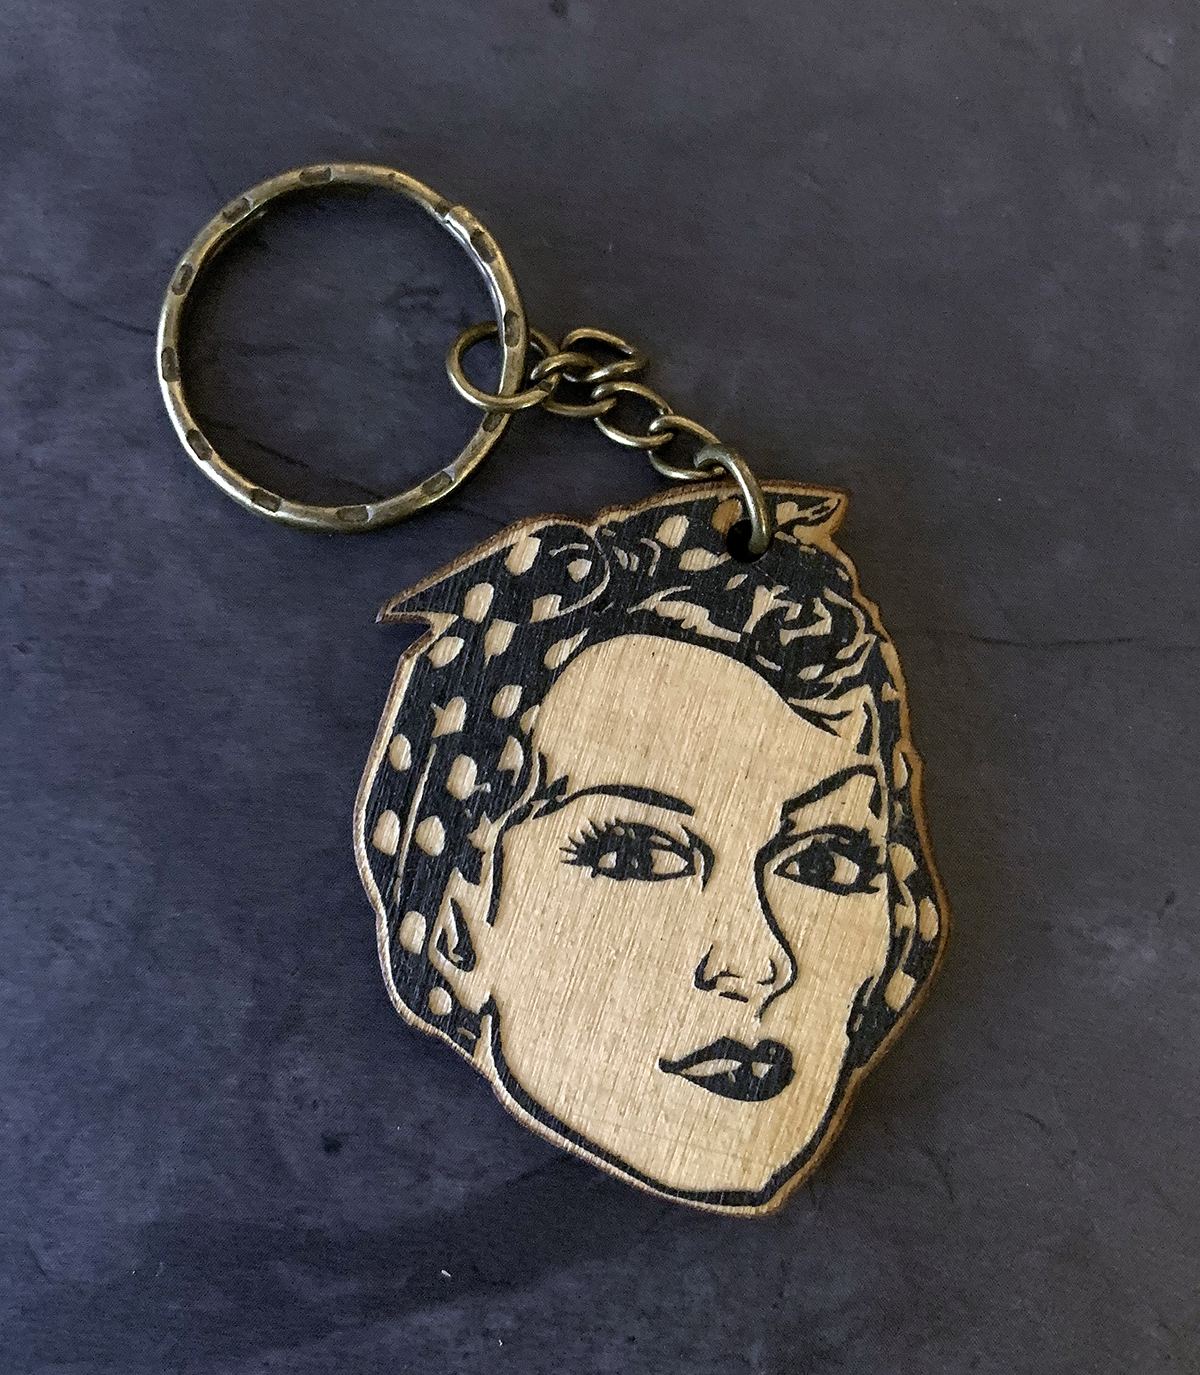 Rosie the Riveter Handcrafted Wooden Keychain - Pop Culture Spot